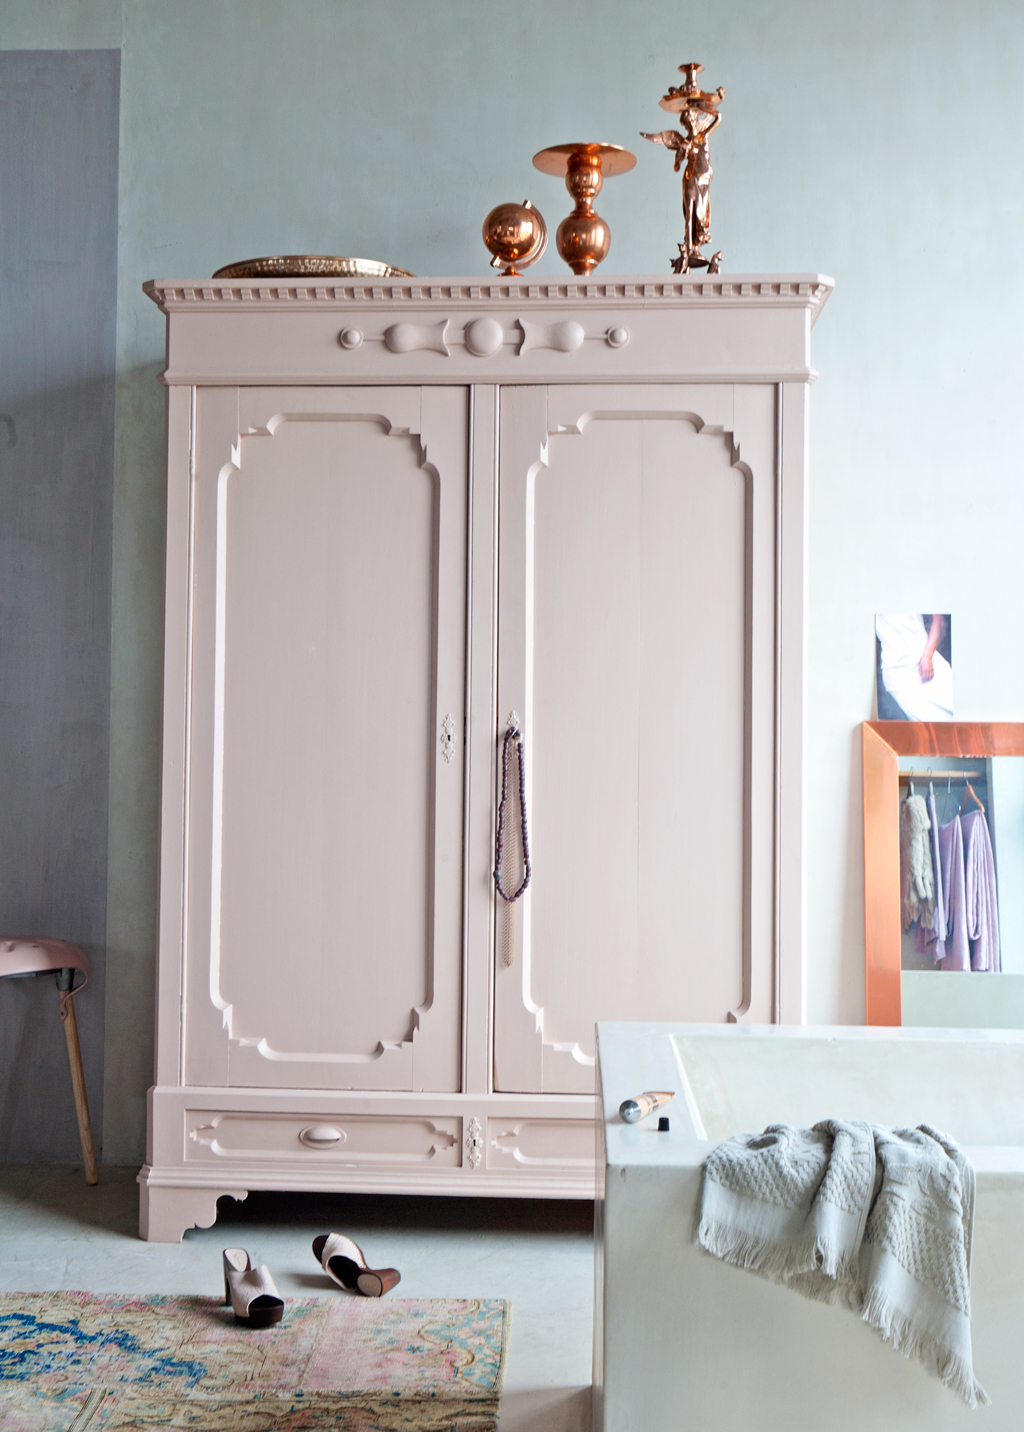 Soft pink armoire with copper decor accents